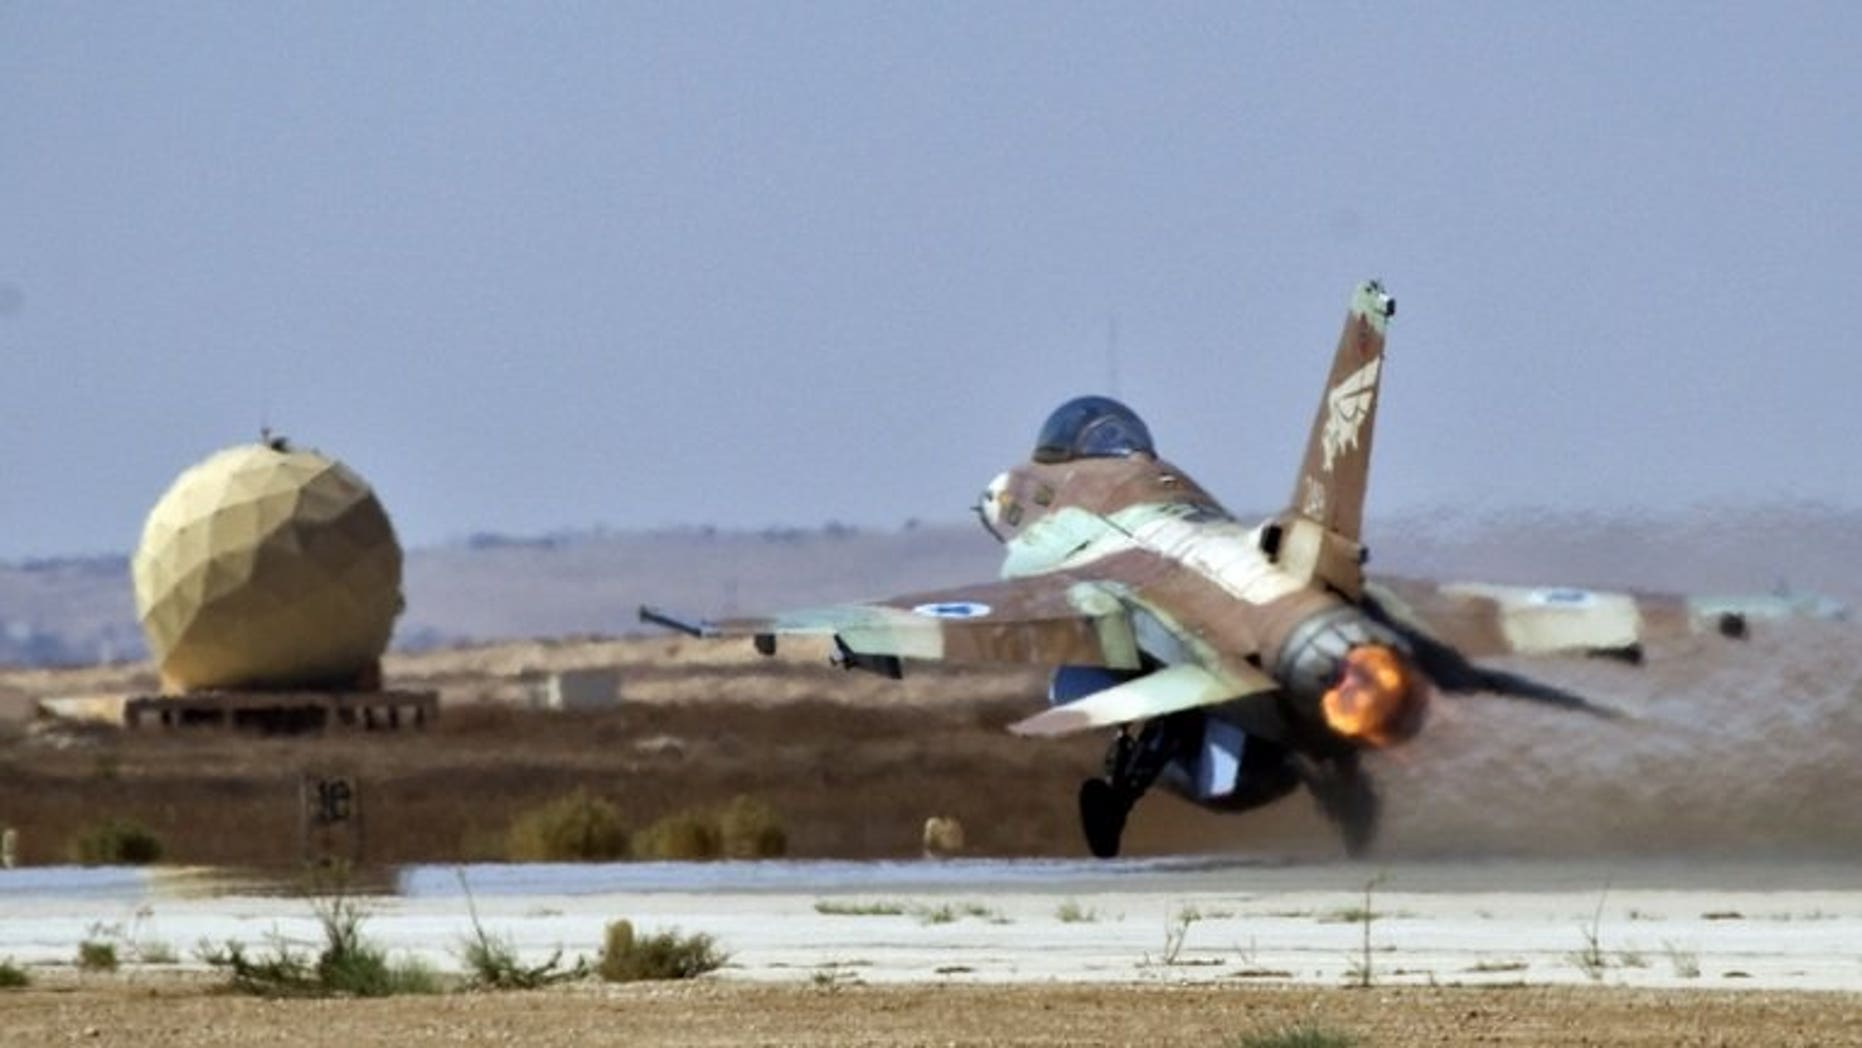 An Israeli F-16 fighter jet takes off at the Nevatim air force base near Beersheva on October 6, 2010. An Israeli warplane has crashed into the Mediterranean Sea following a malfunction although both crew members were rescued unharmed, a military spokesman tells AFP.